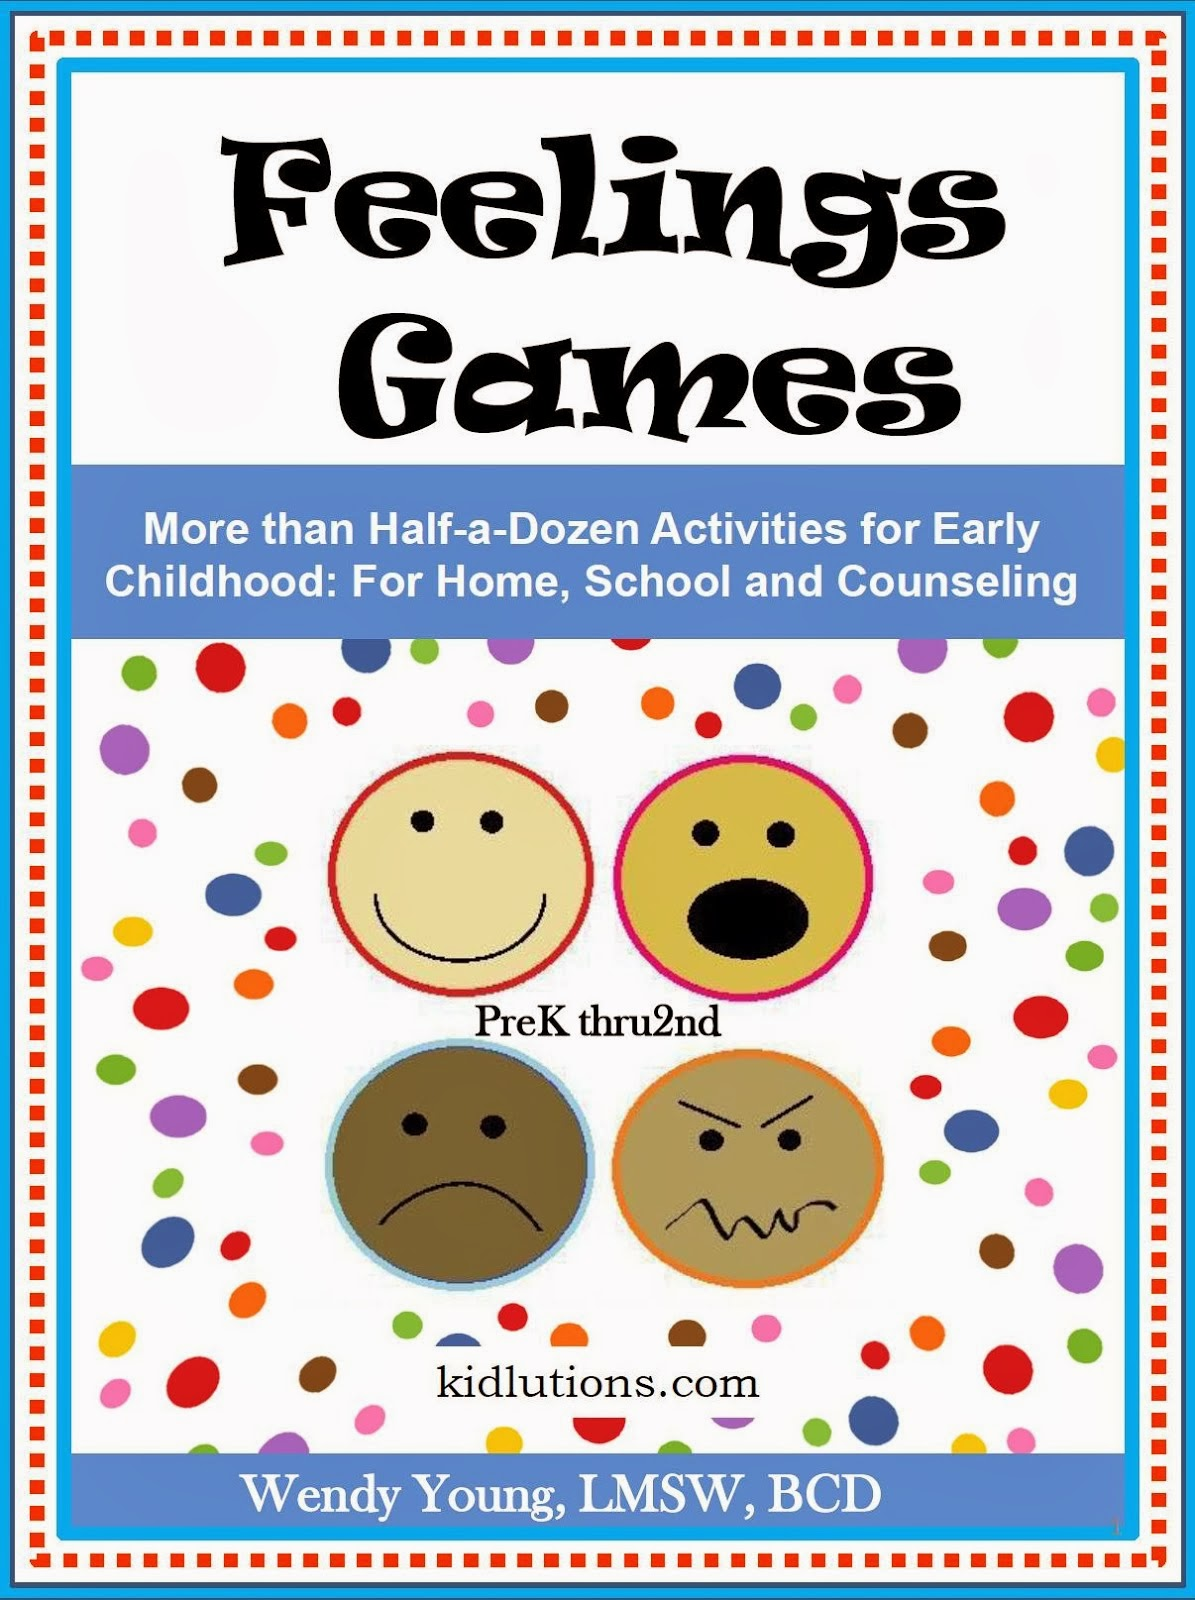 Feelings games